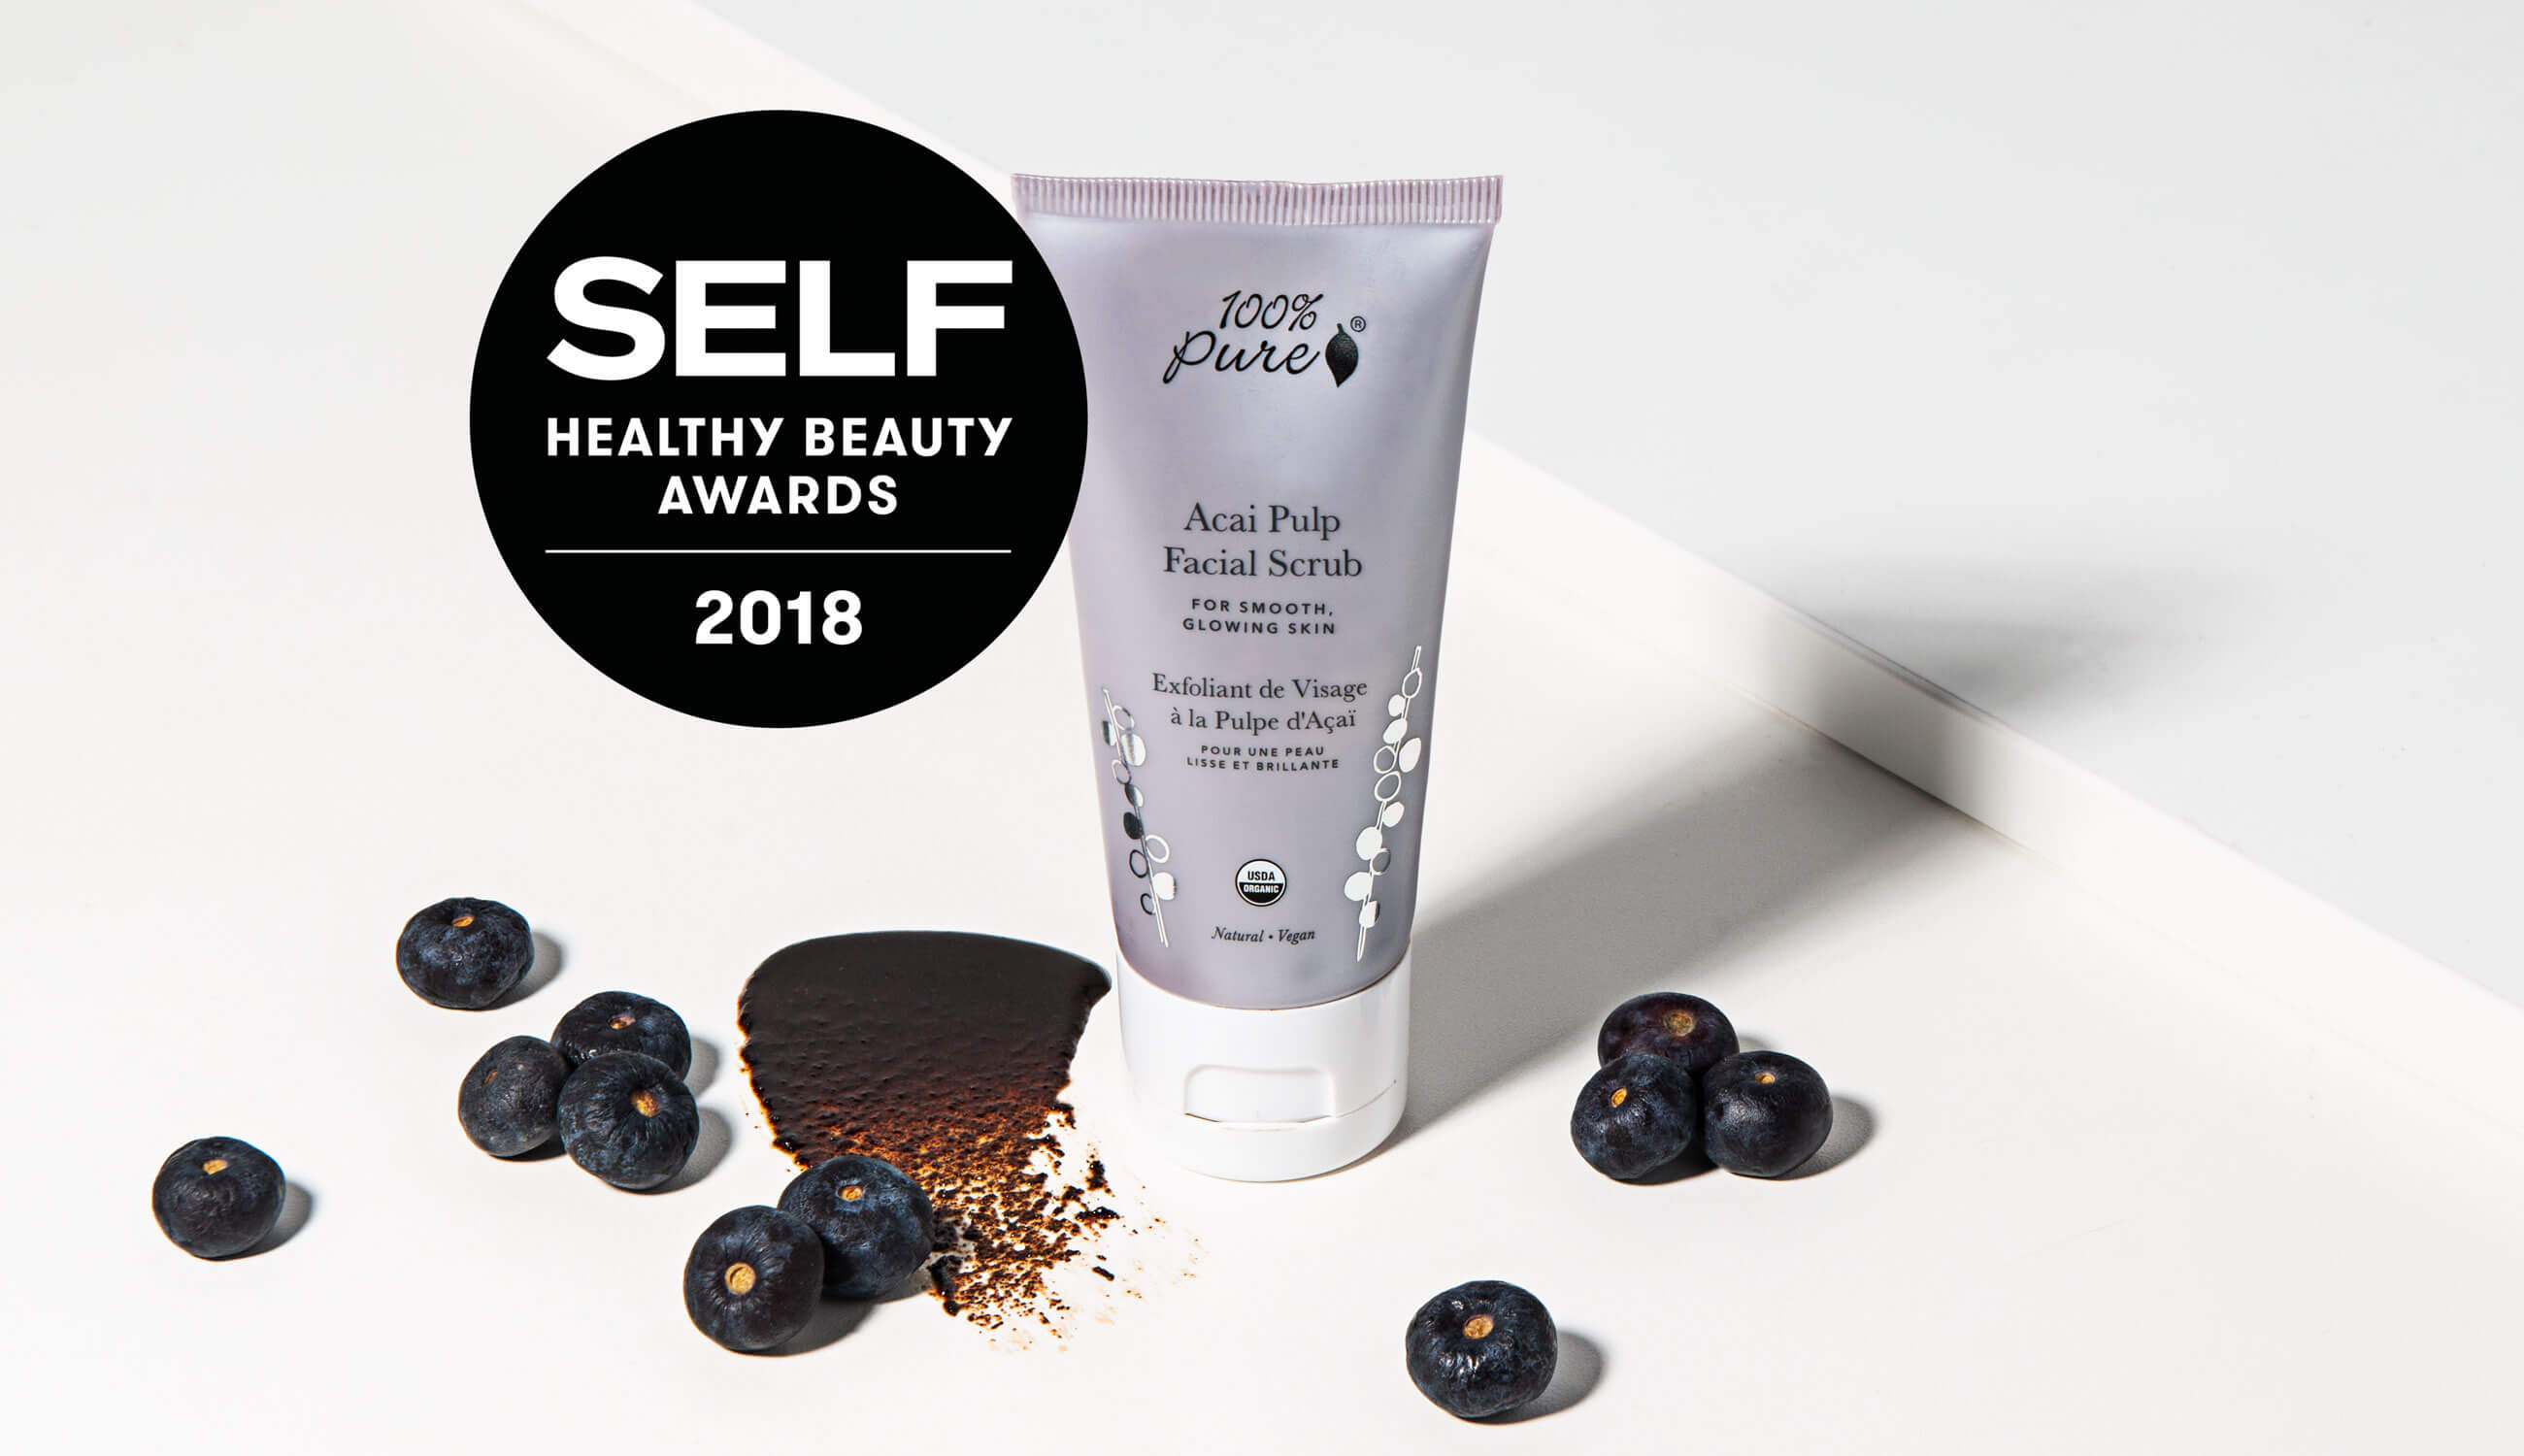 Self Beauty Award Acai